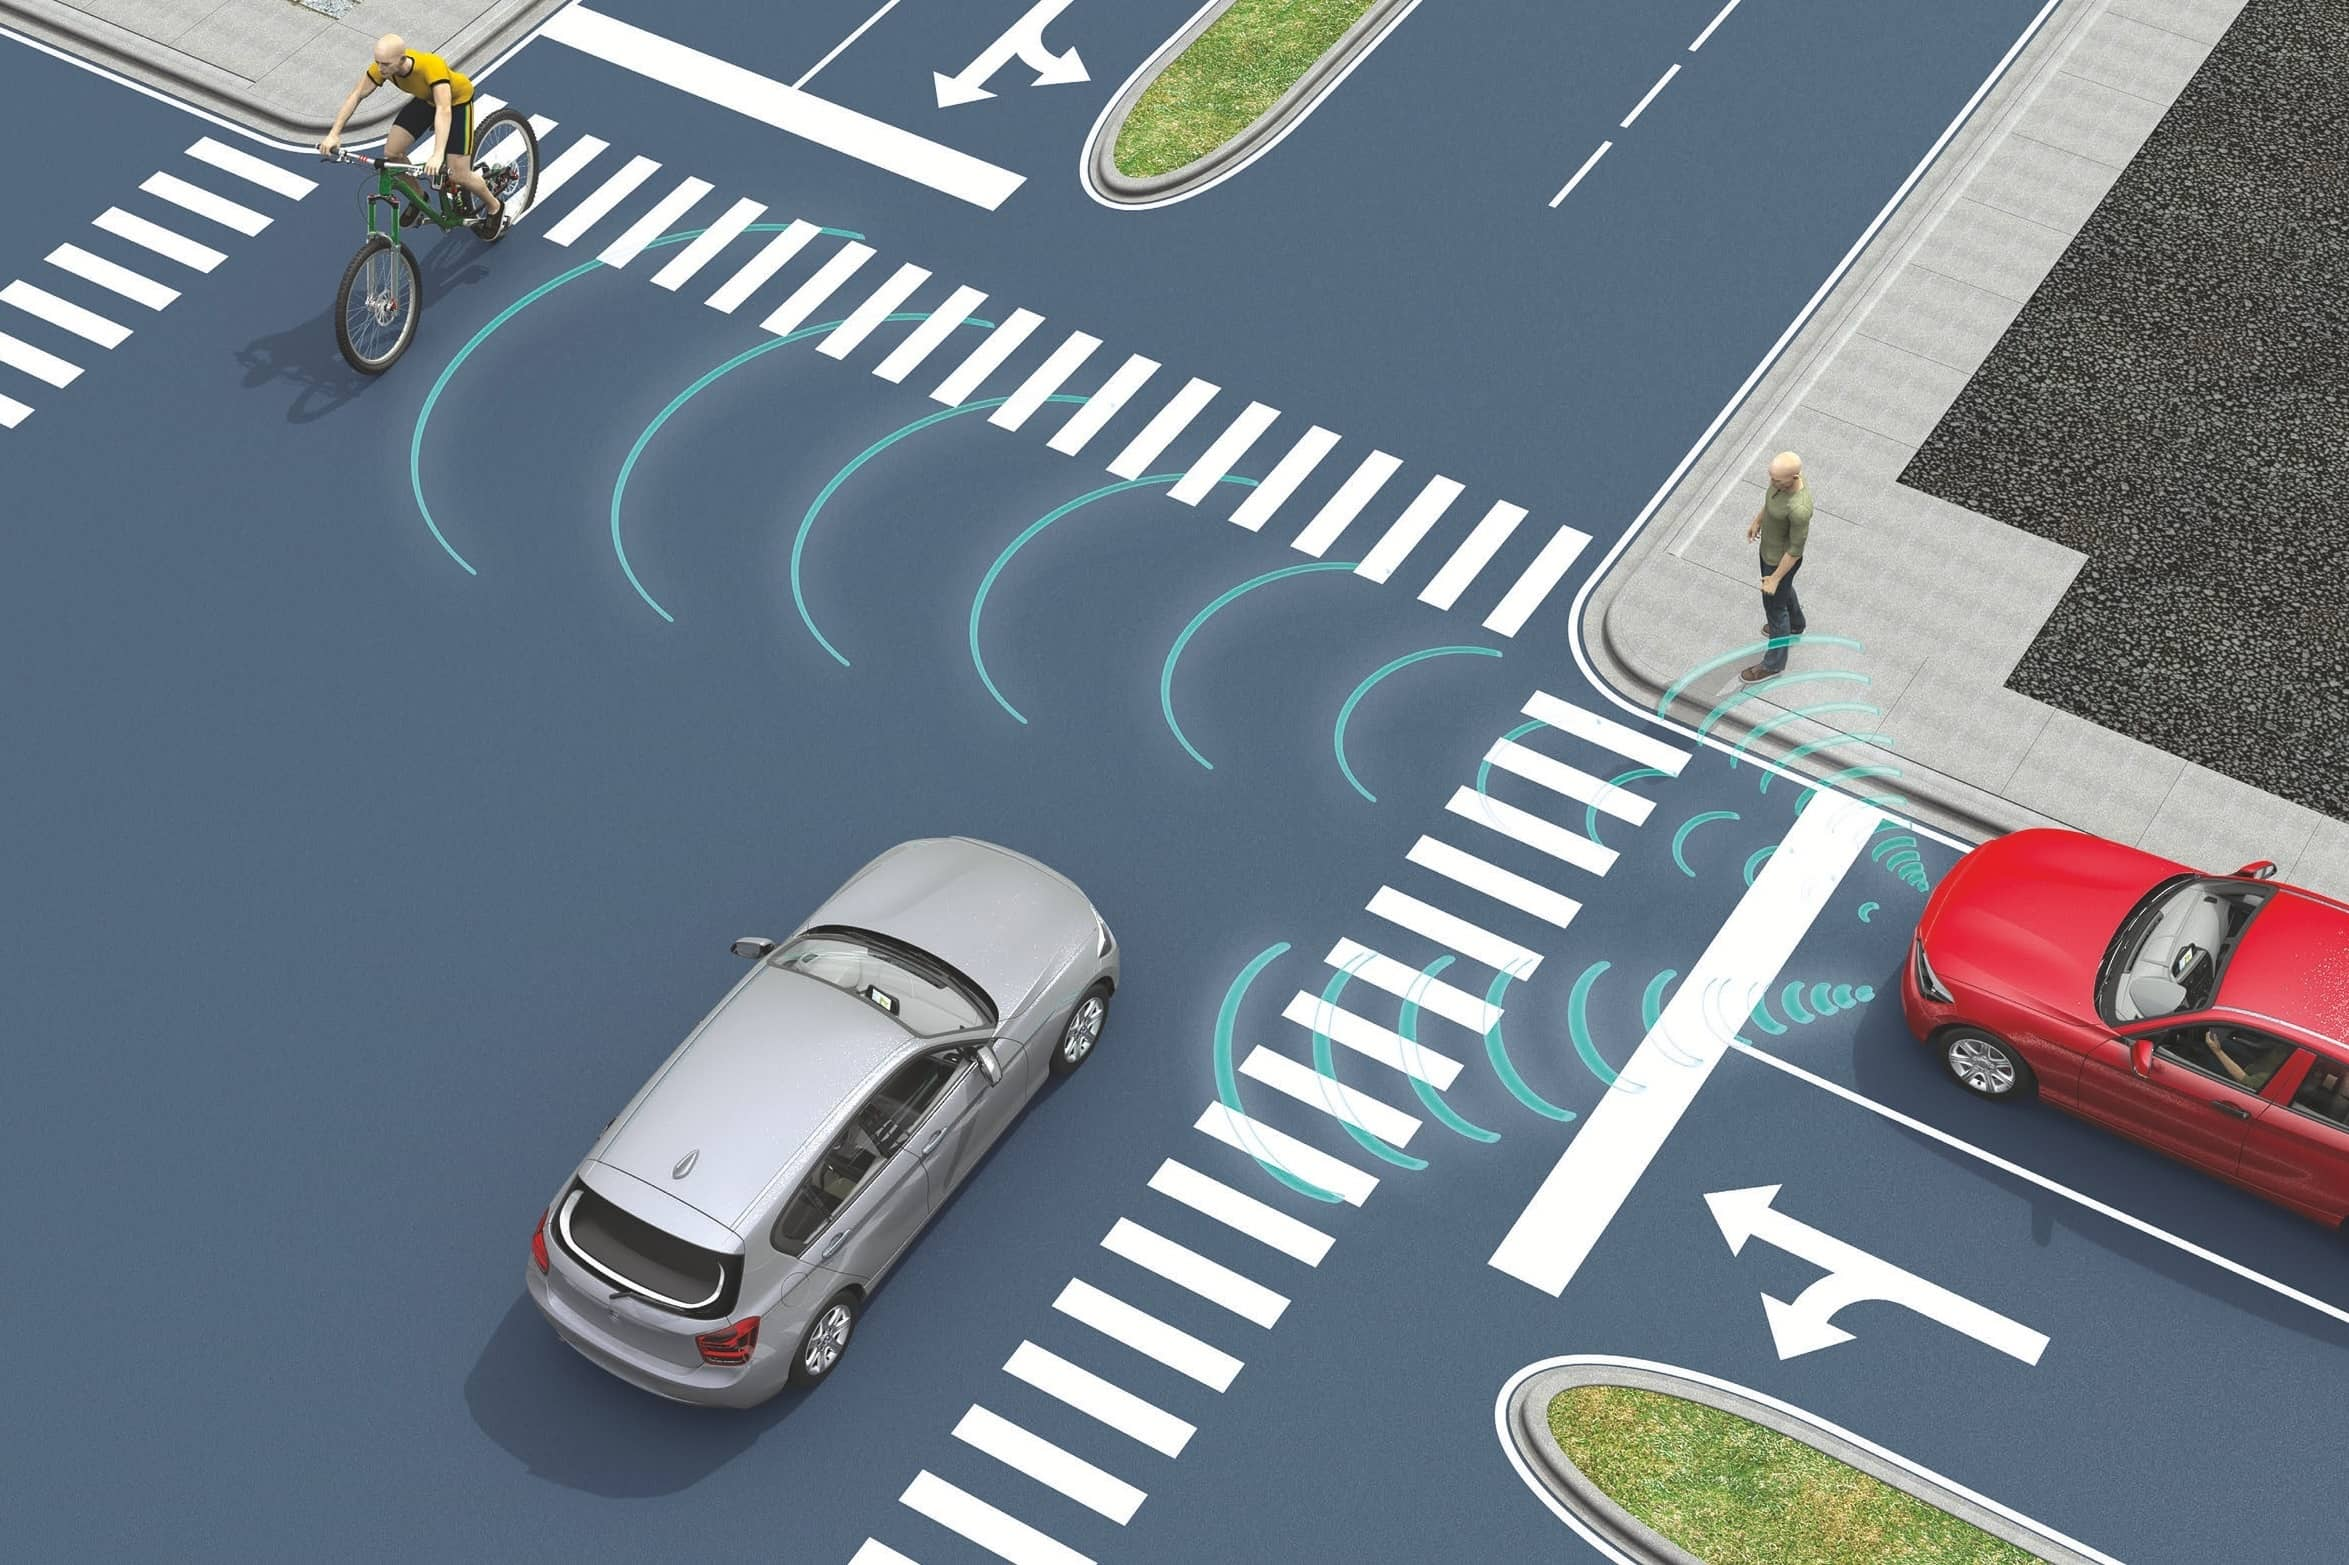 Moral Machines - TOUGH QUESTIONS ABOUT SELF-DRIVING CARS